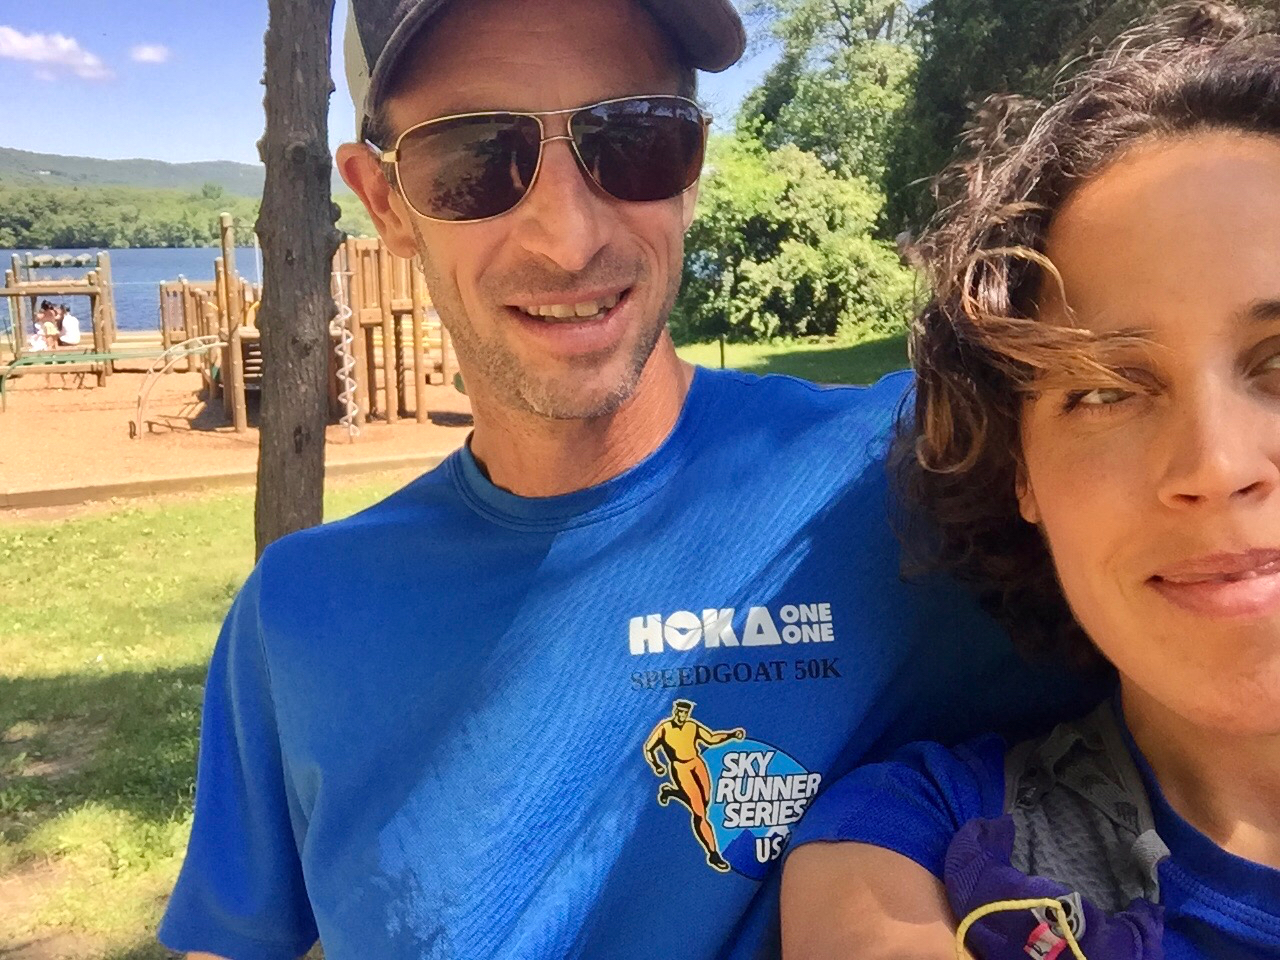 Hanging with Karl before the crowd arrived at Bear Mountain,New York, awaiting Scott Jurek to arrive during his 2015 AT record breaking attempt!